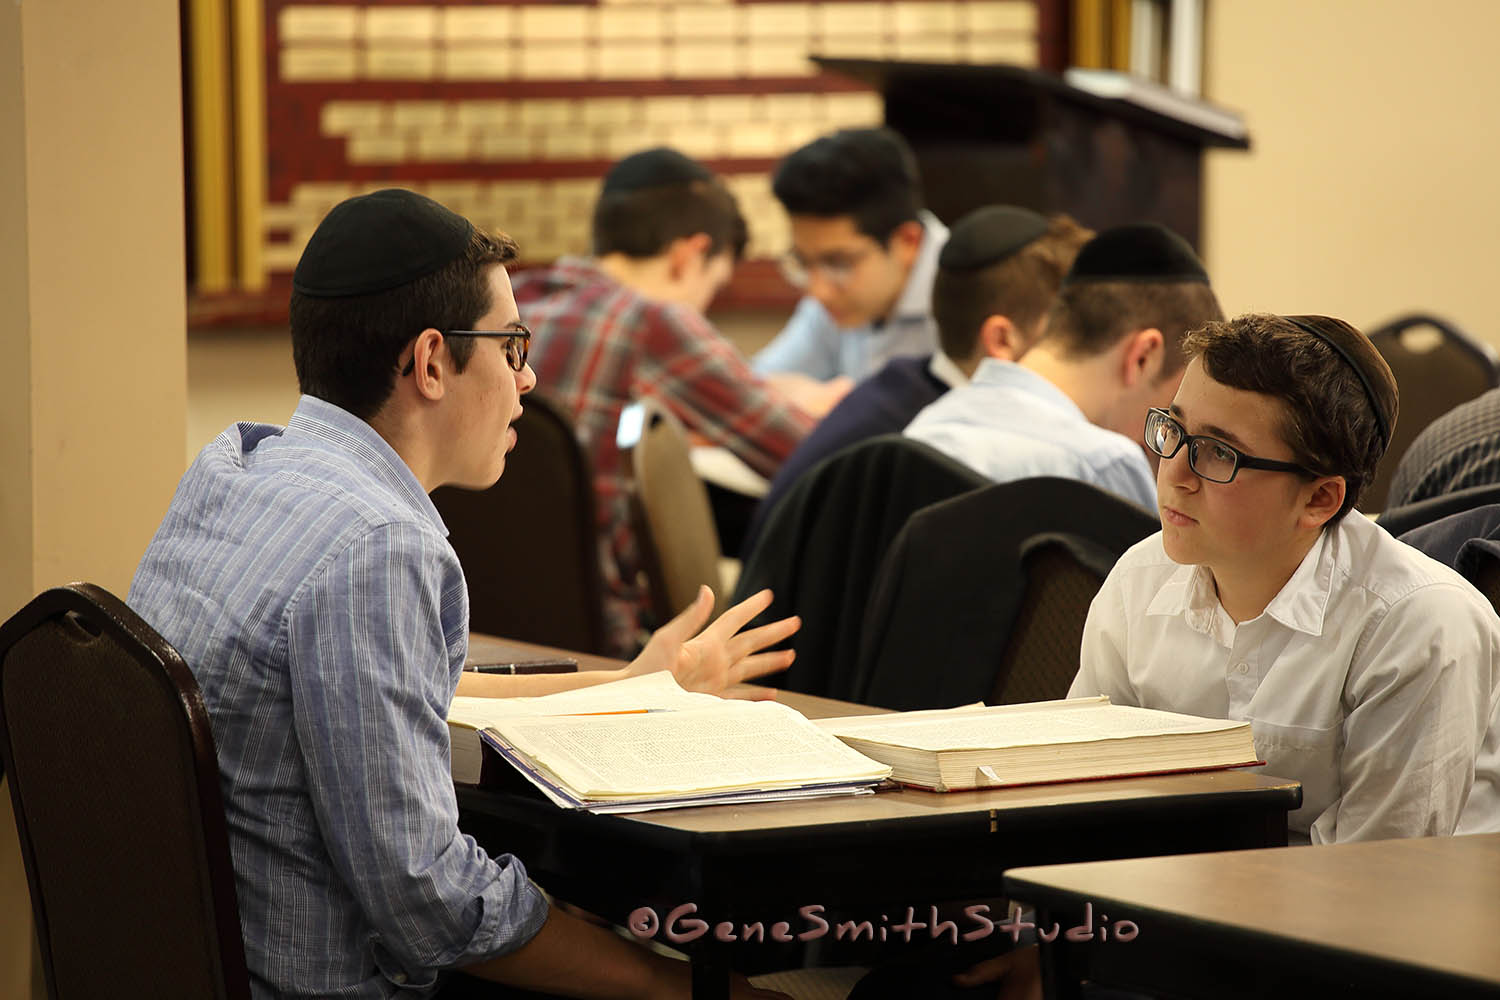 Two Conservative Jewish young men study together in Study Hall at the Foxman Torah Institute in Cherry Hill, NJ